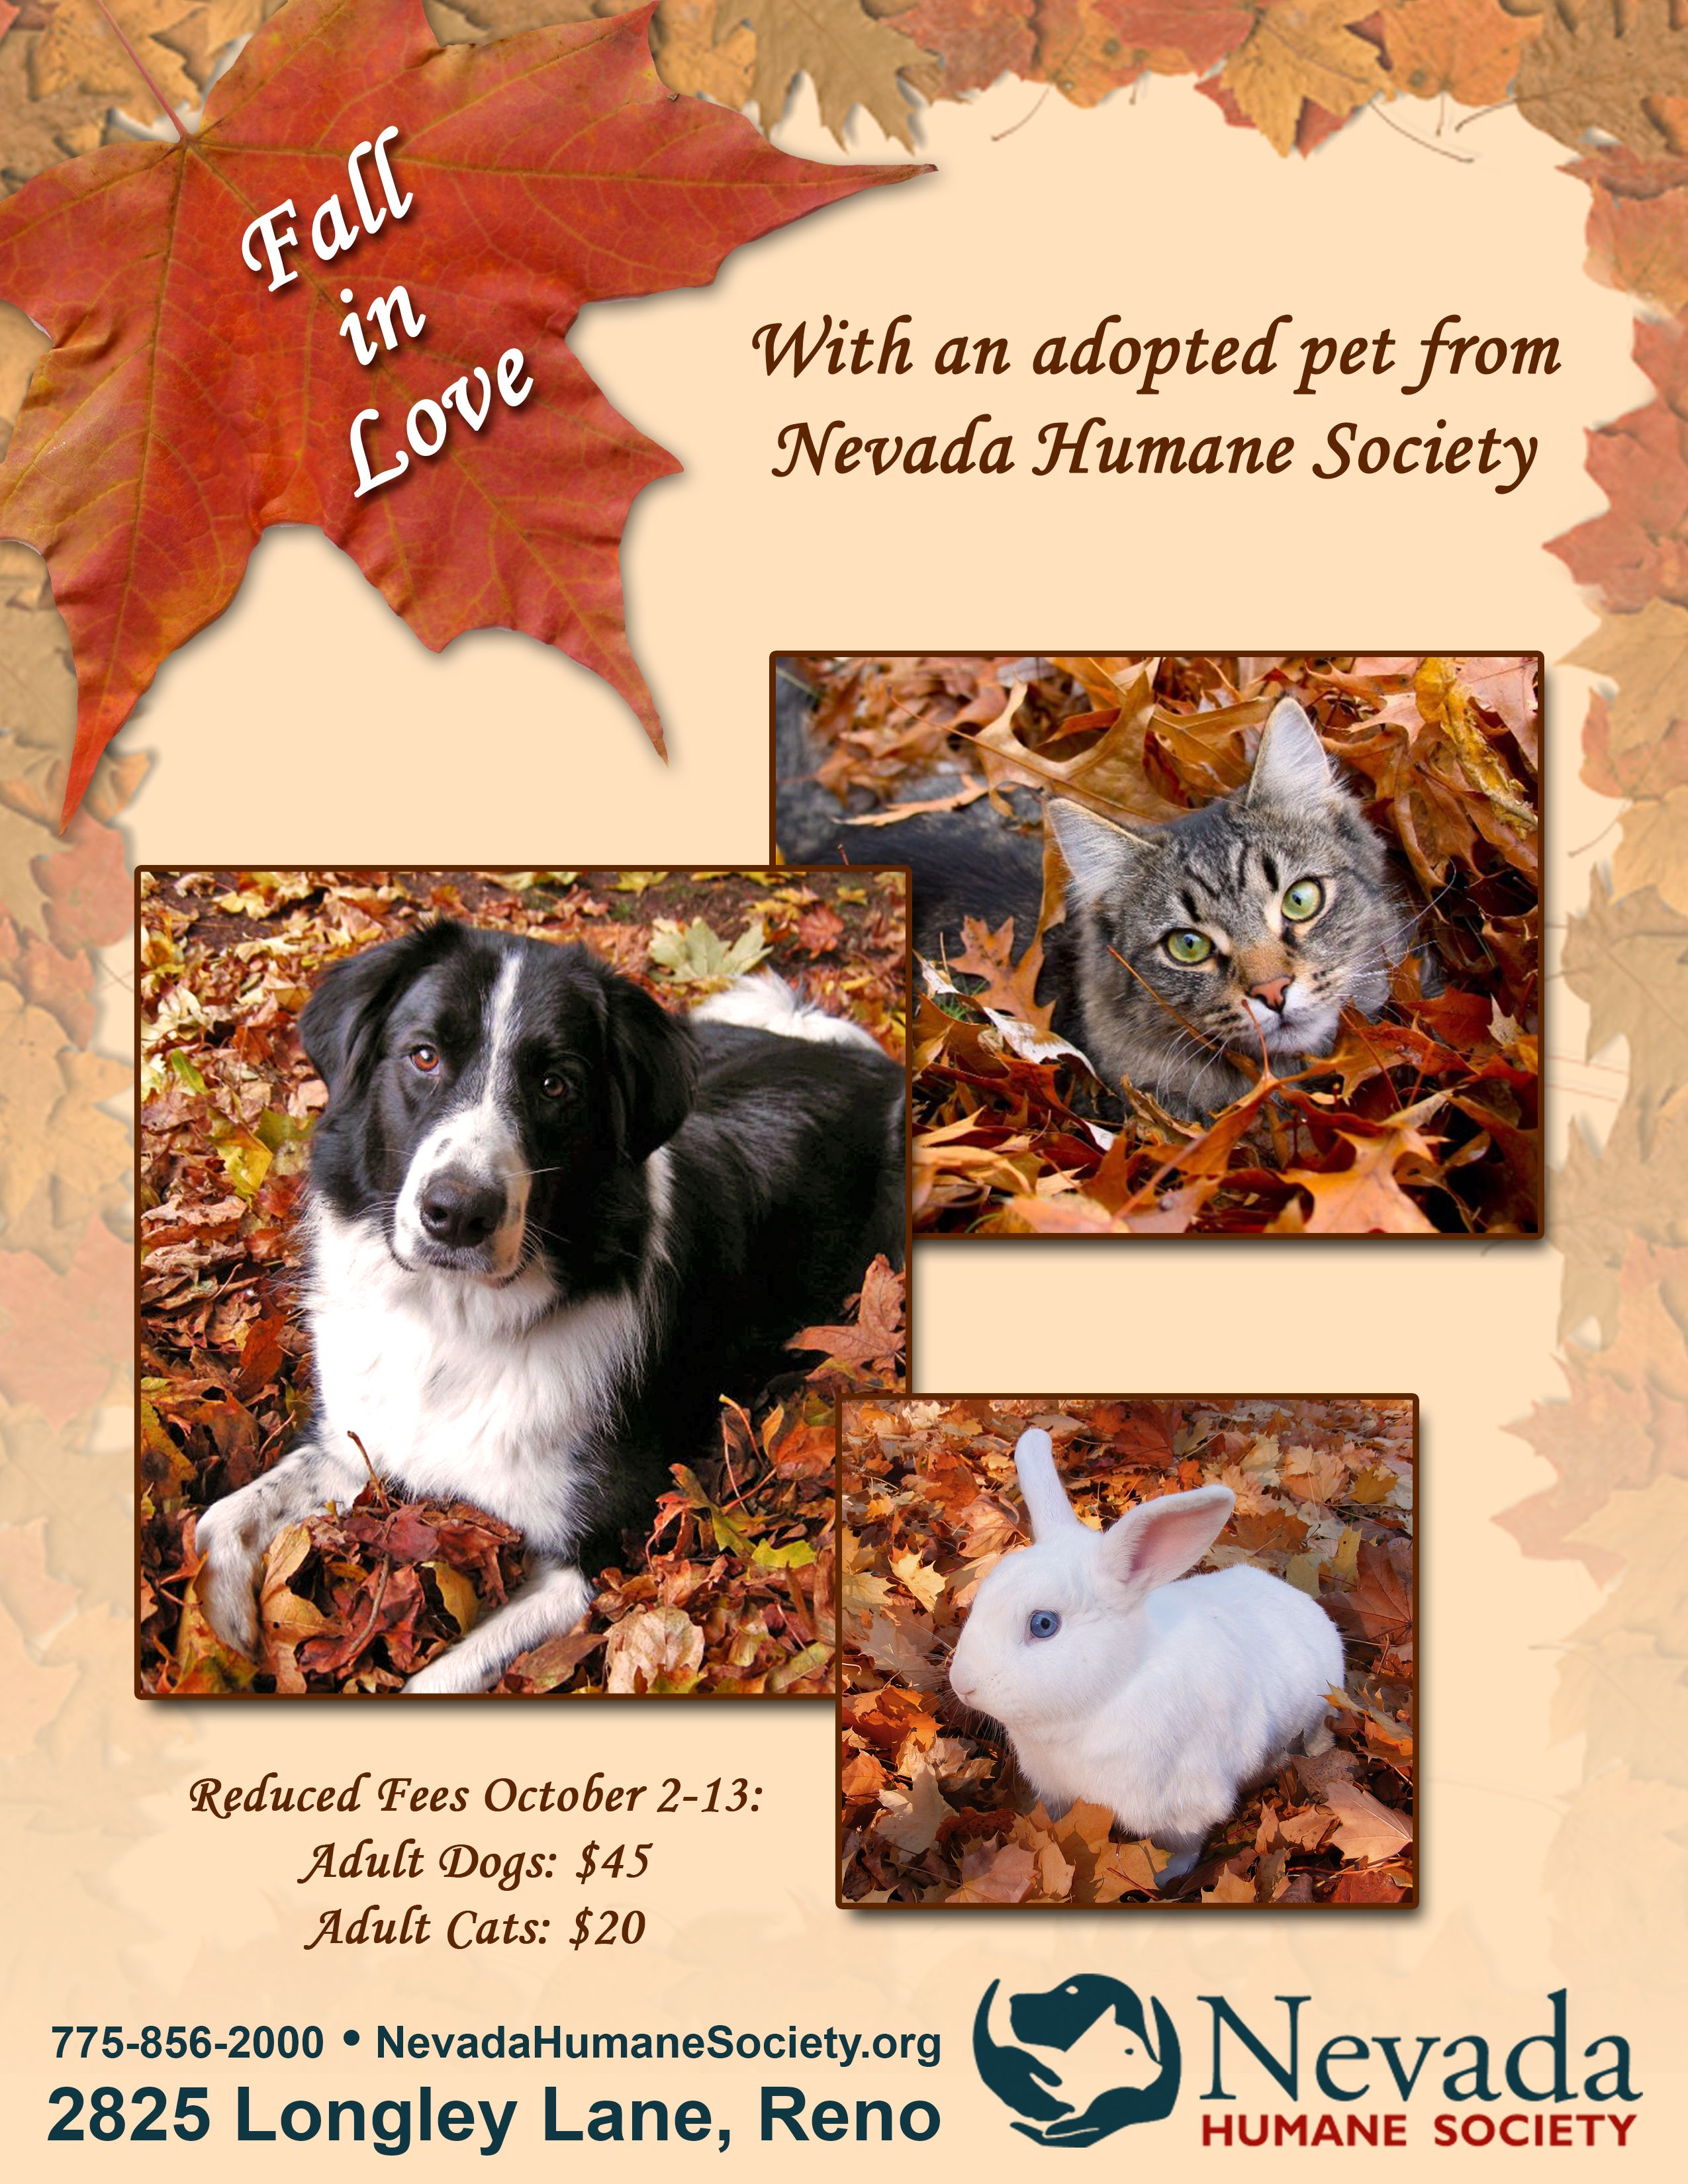 Fall In Love With A Homeless Pet From Nevada Humane Society Pets Homeless Pets Adult Dogs